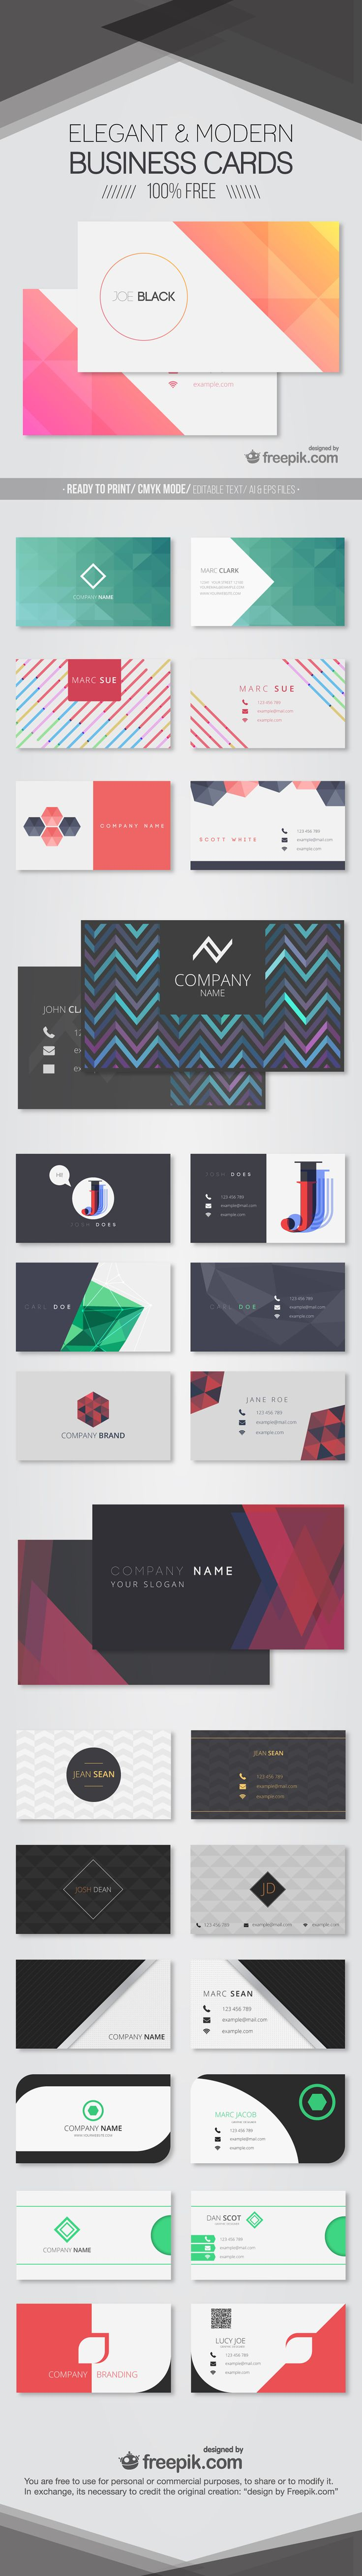 Best 25 modern business cards ideas on pinterest free business 30 free modern business card templates magicingreecefo Gallery